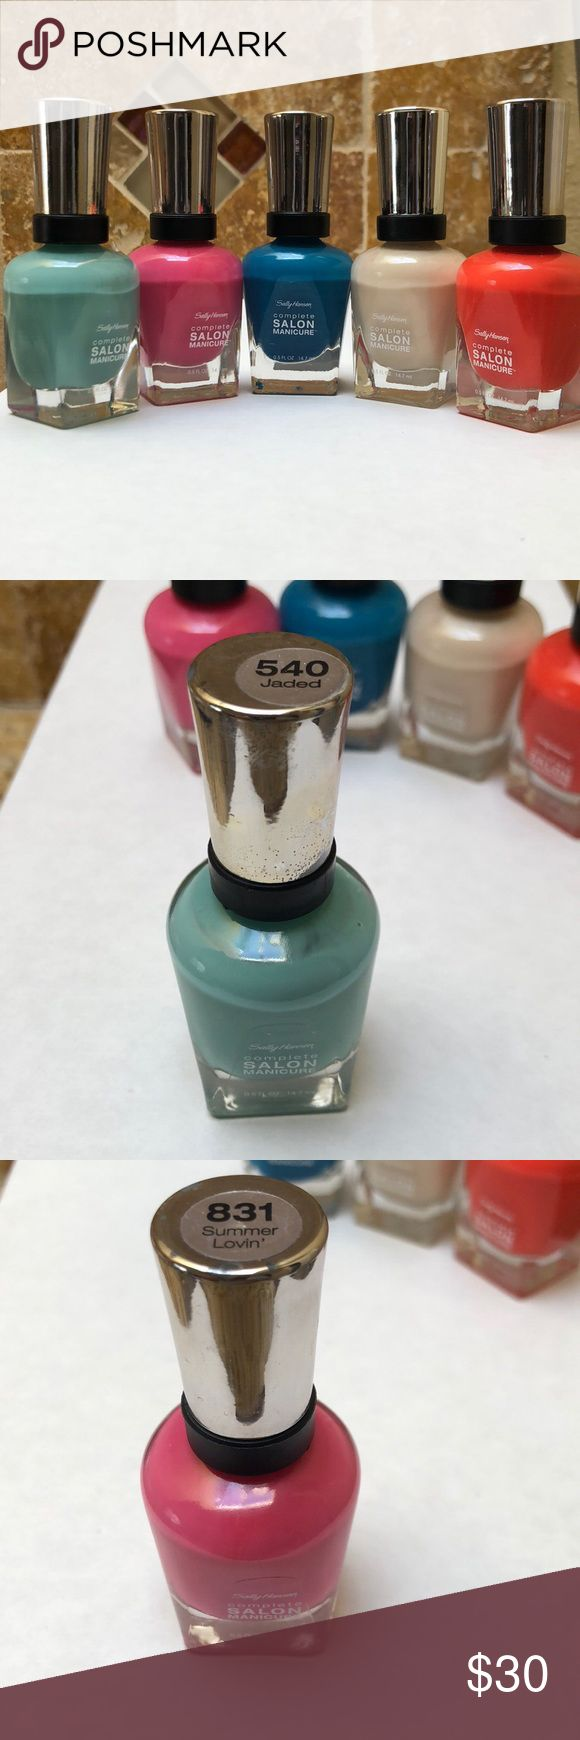 Sally Hansen nail polish Sally Hansen nail polish in 5 different colors. Hardly ever used. 540 jaded, 831 Summer lovin', 530 please sea me, 310 almost almond, 832 beach redy. Sally Hansen Other